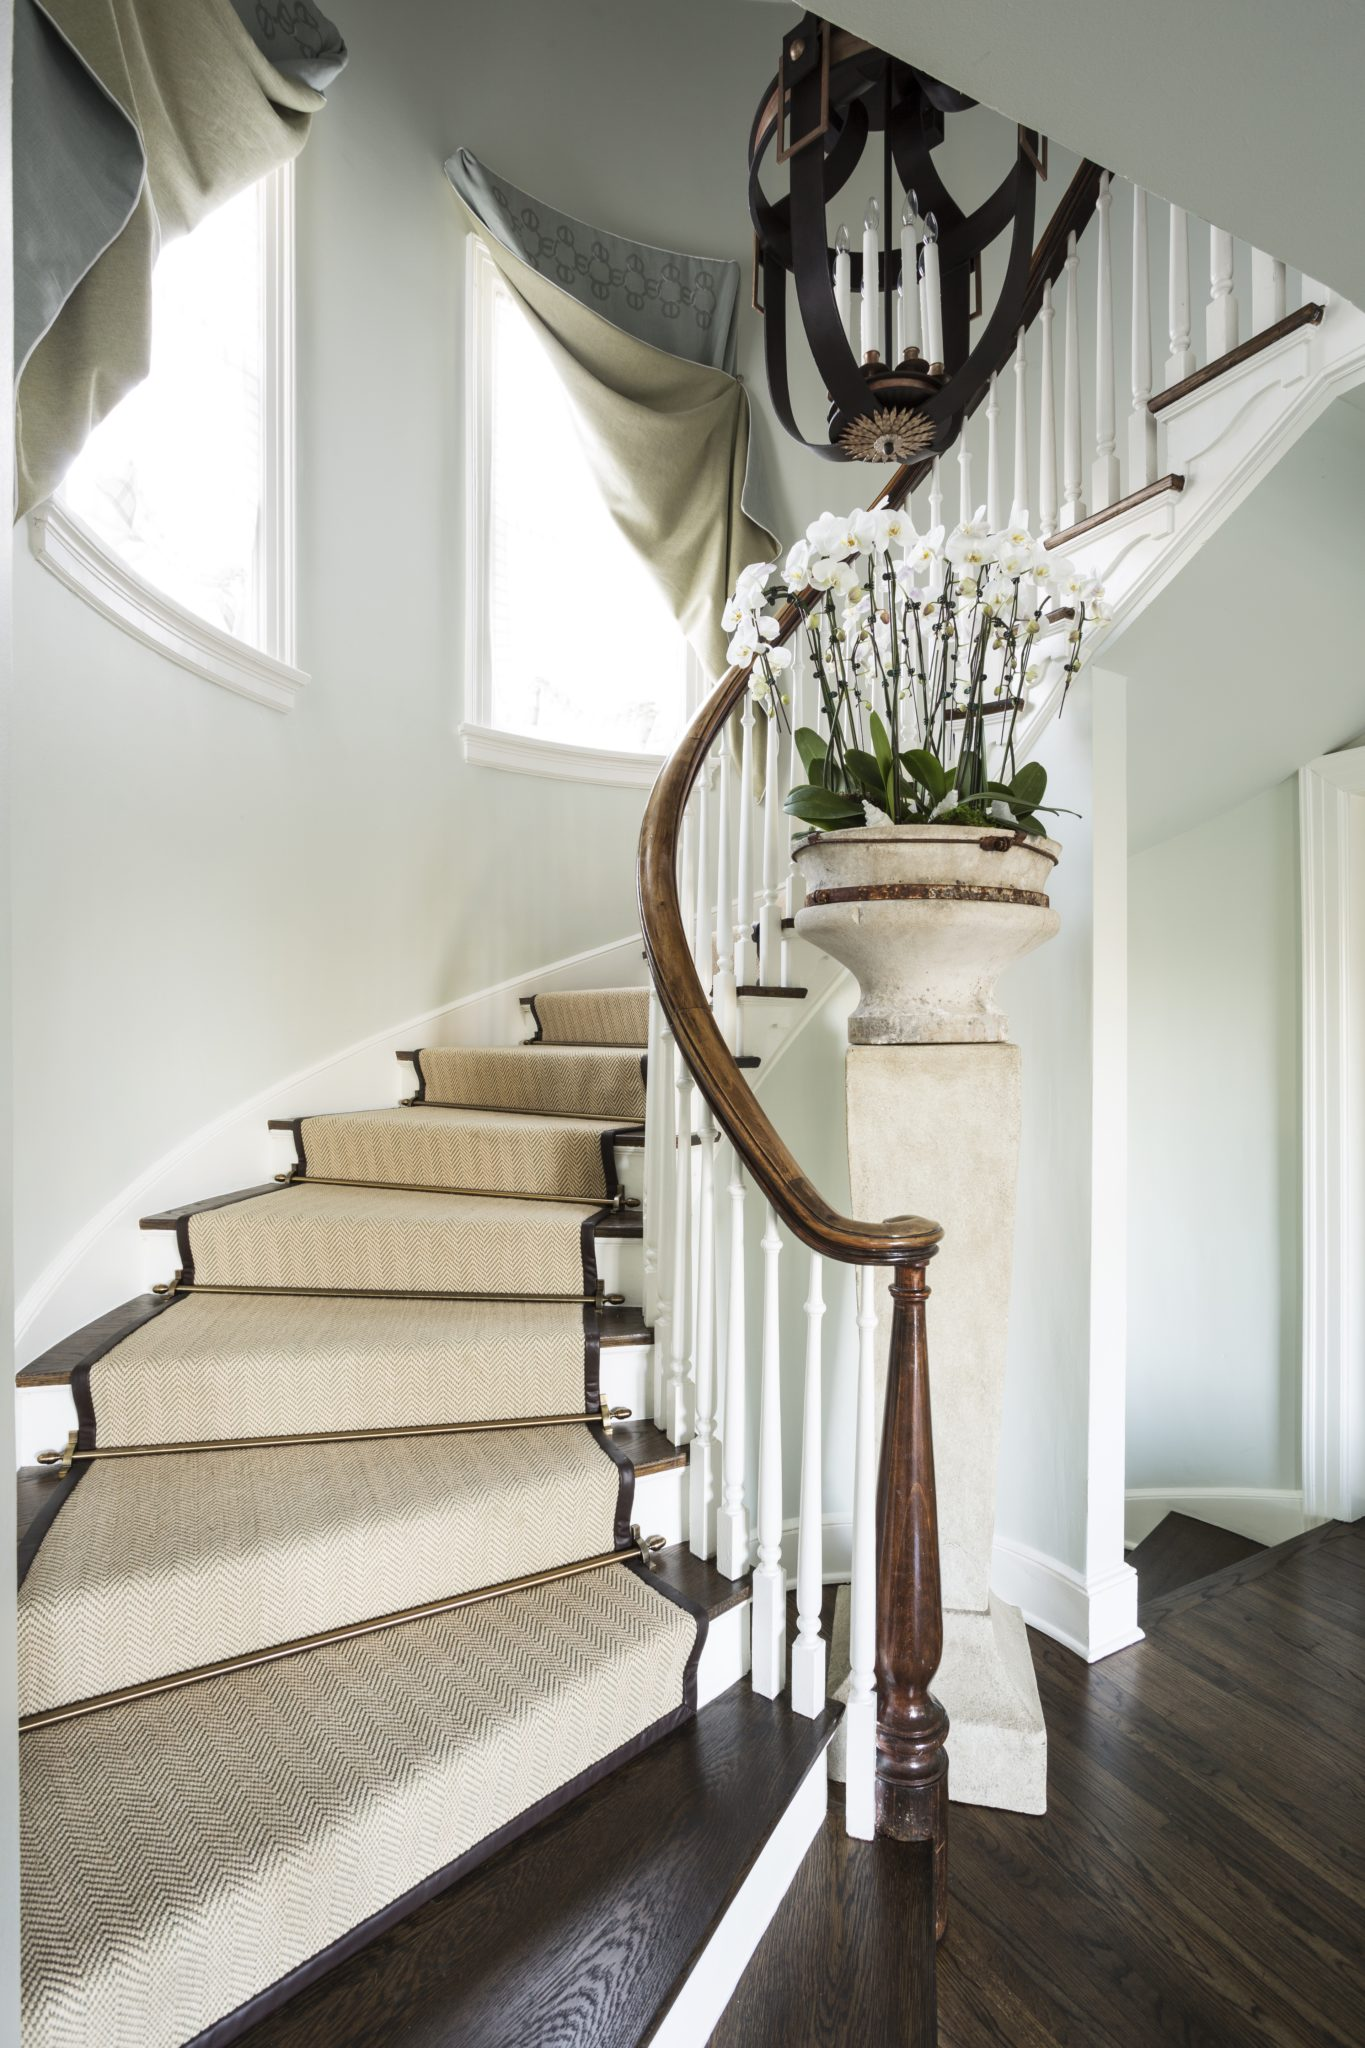 Grand staircase with leather bound sisal runner and architectural fragments by Goddard Design Group